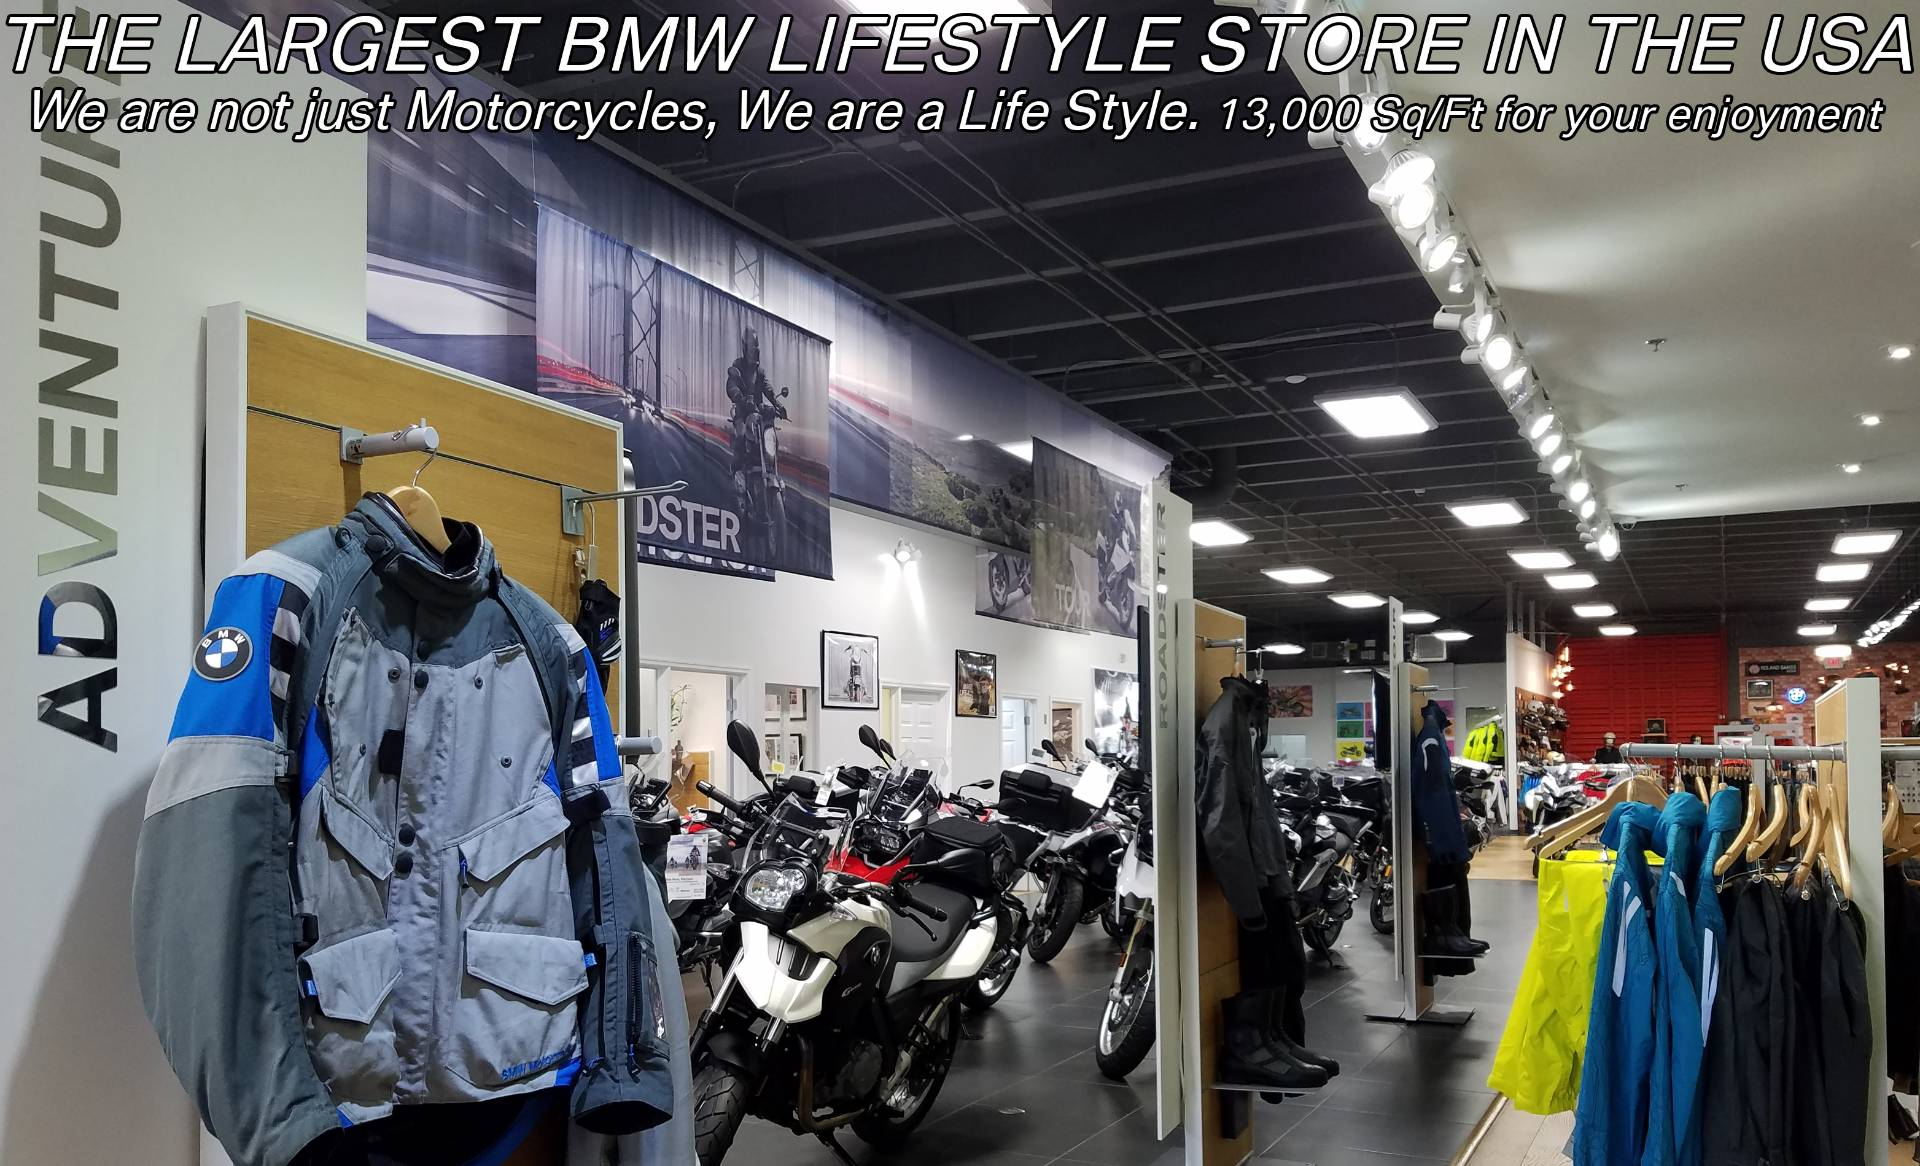 New 2019 BMW R 1250 GS for sale, New BMW for sale R 1250GS, New BMW Motorcycle R1250GS for sale, new BMW 1250GS, R1250GS, GS. BMW Motorcycles of Miami, Motorcycles of Miami, Motorcycles Miami, New Motorcycles, Used Motorcycles, pre-owned. #BMWMotorcyclesOfMiami #MotorcyclesOfMiami.